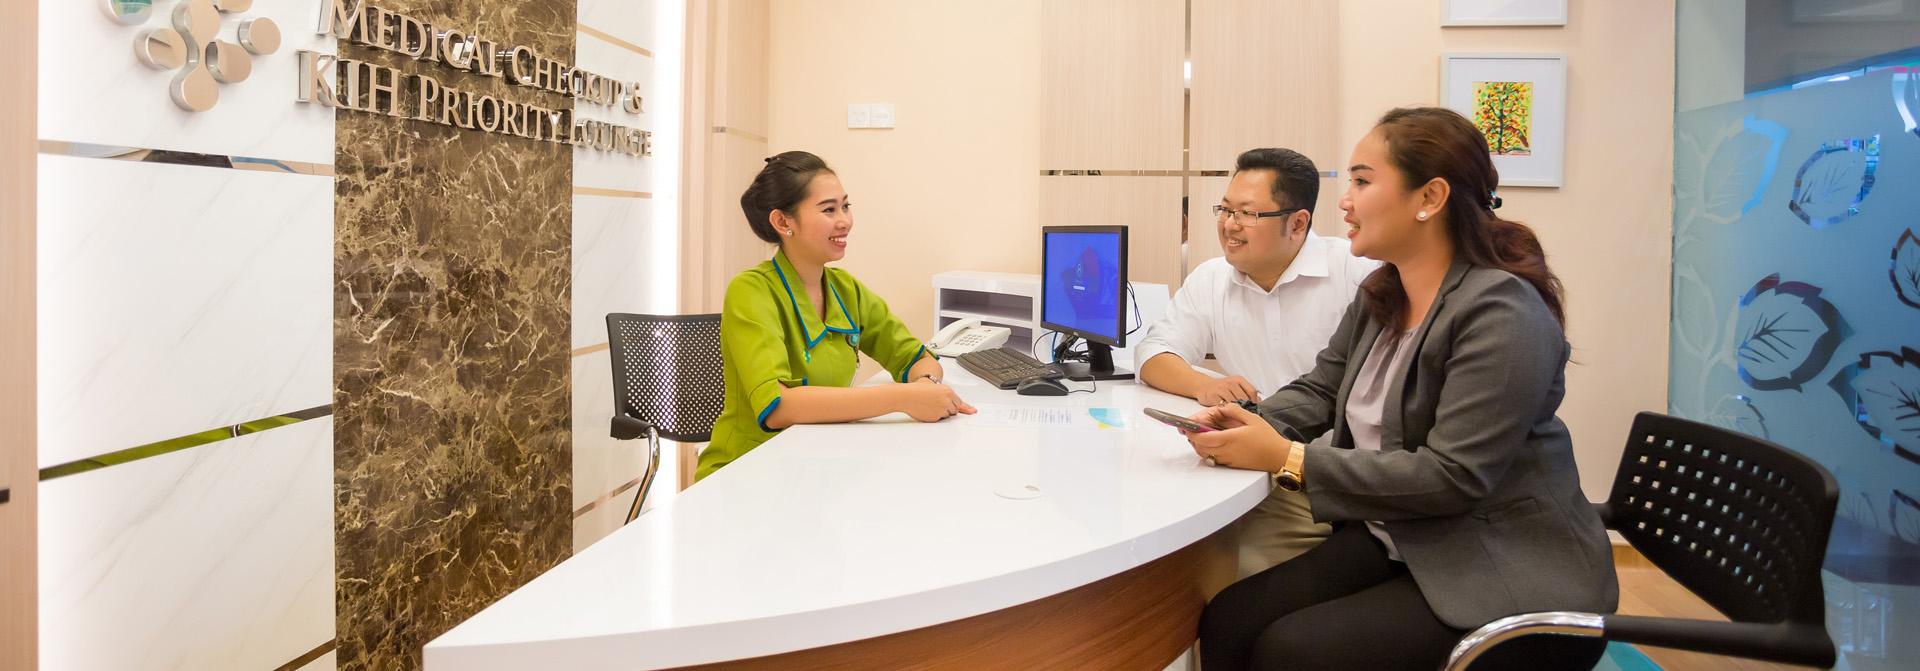 medical check up reception area